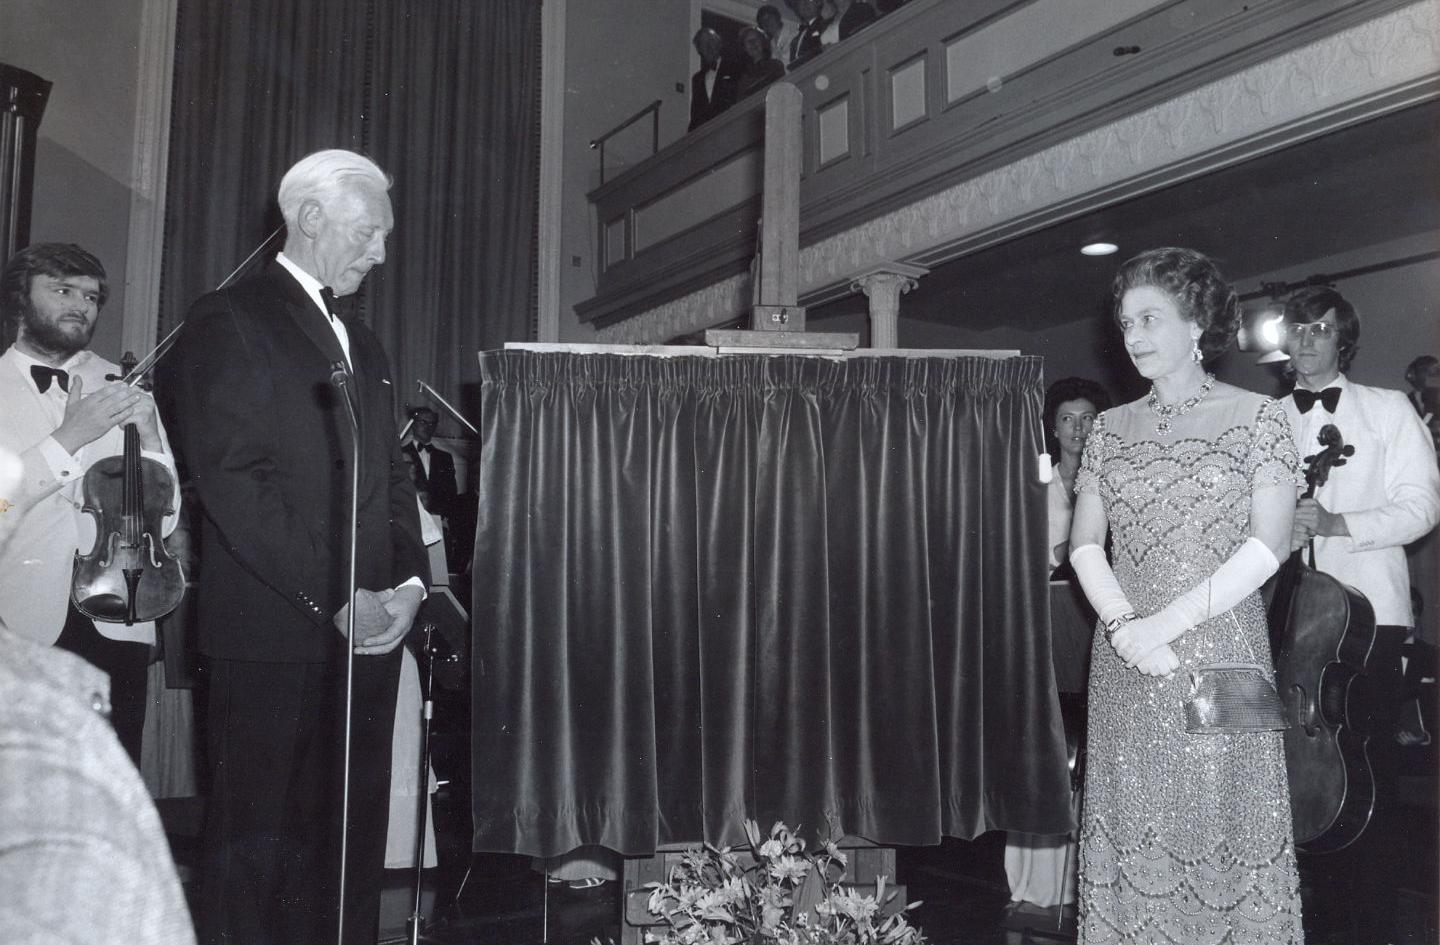 HM The Queen unveiling the plaque